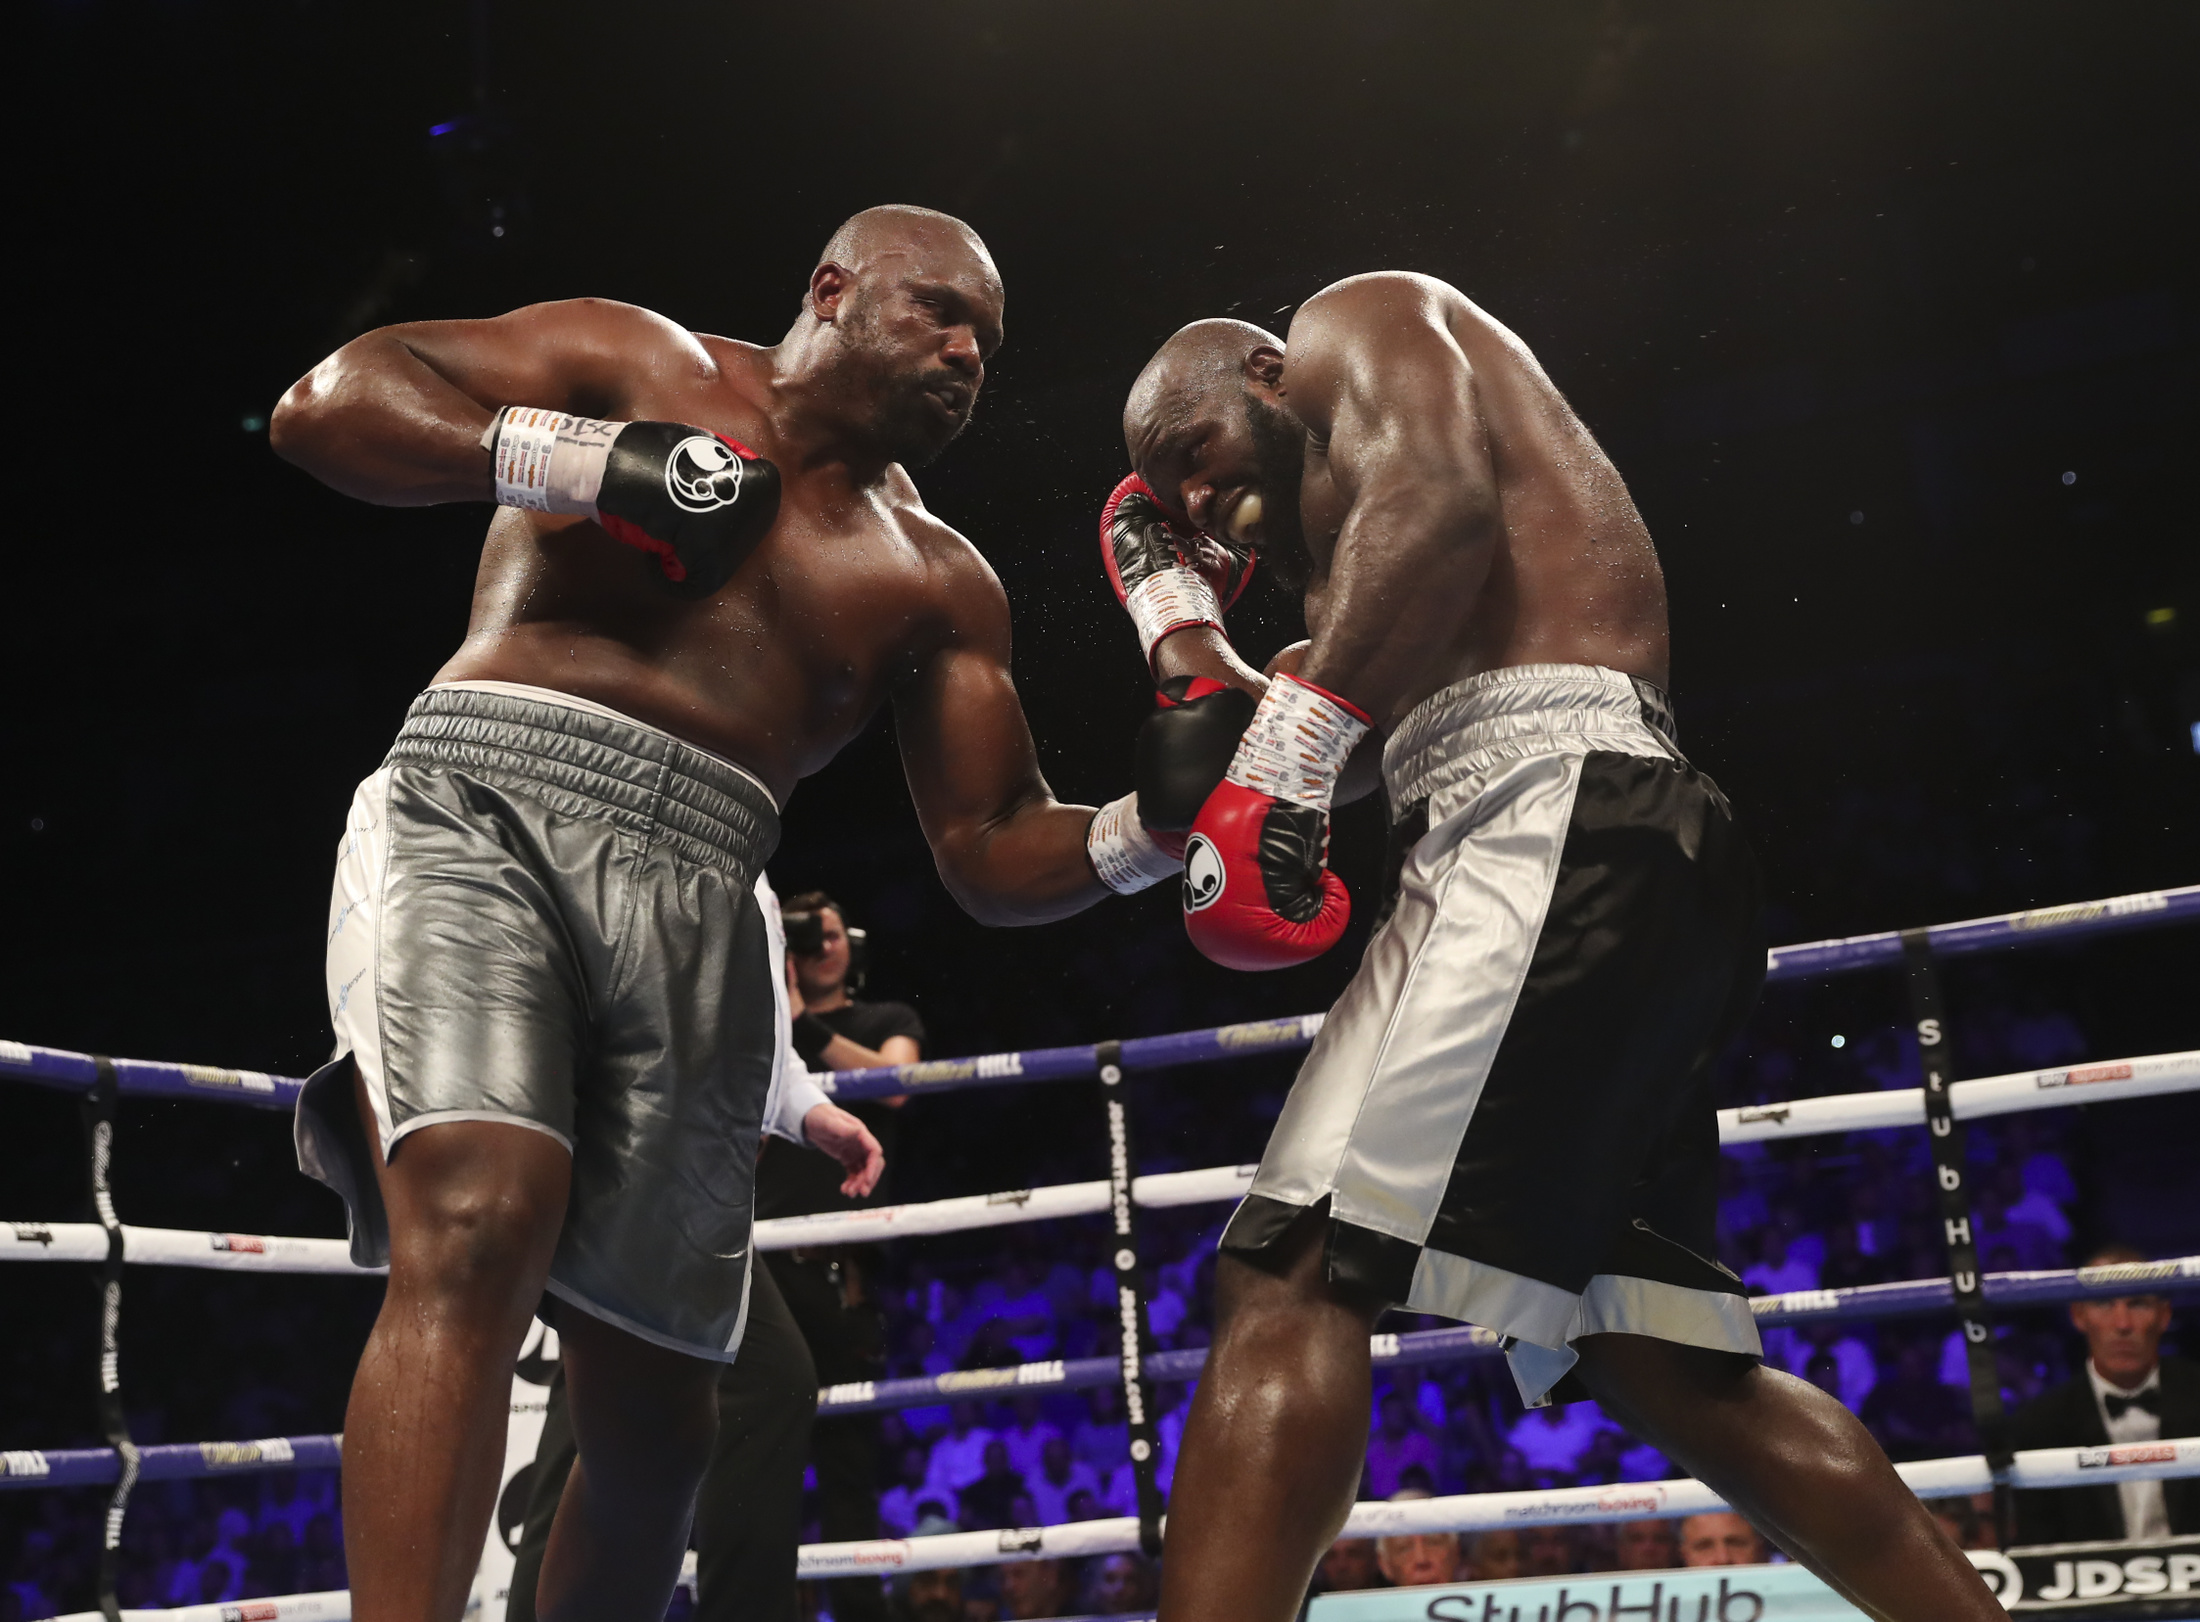 Heavyweight Dereck Chisora (left) attacks Carlos Takam. Photo by Lawrence Lustig